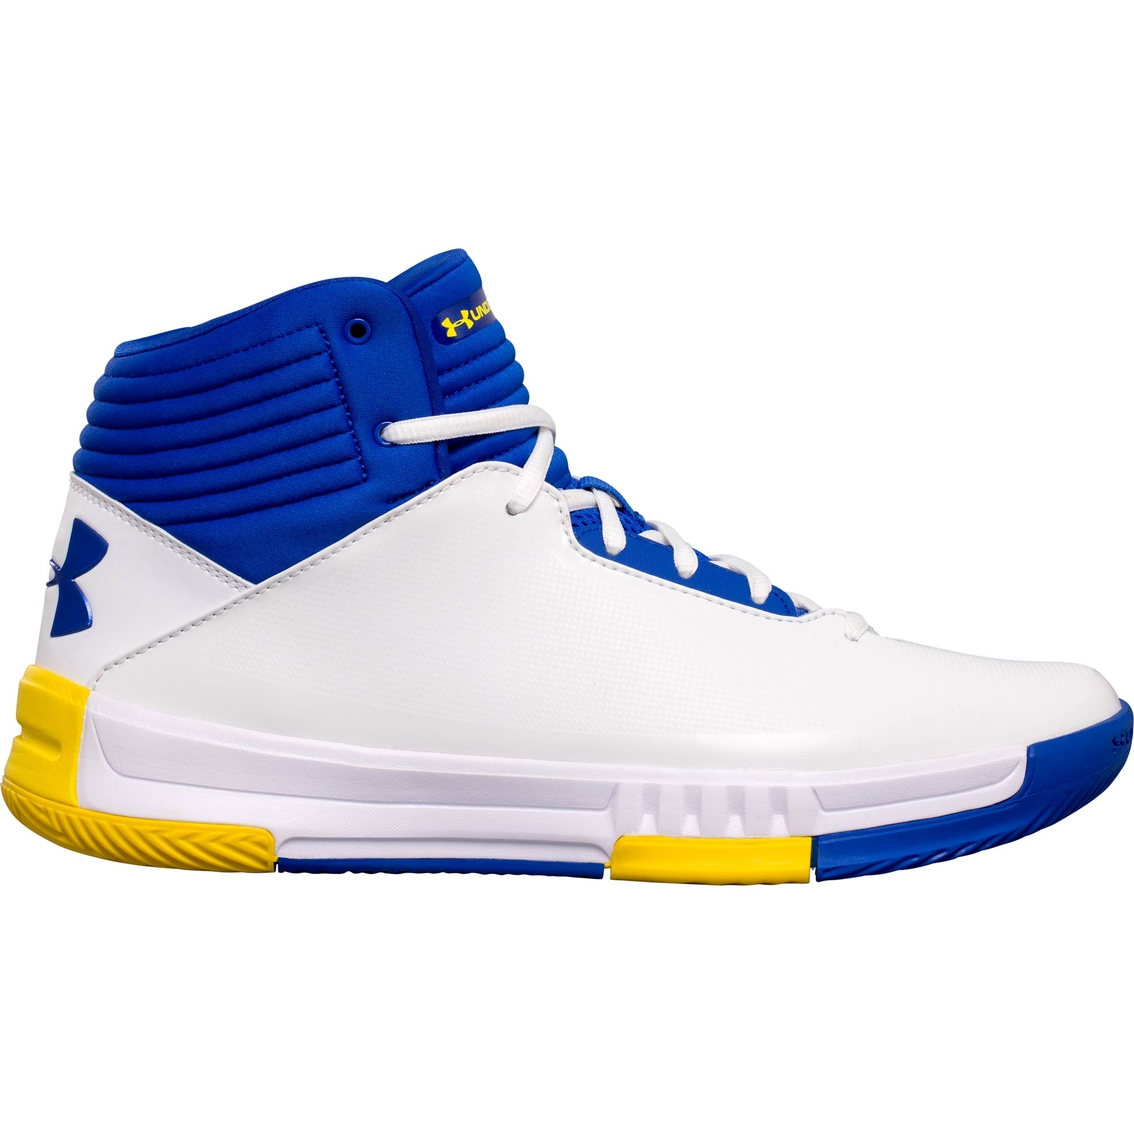 Under Armour Lockdown Basketball Shoes Review